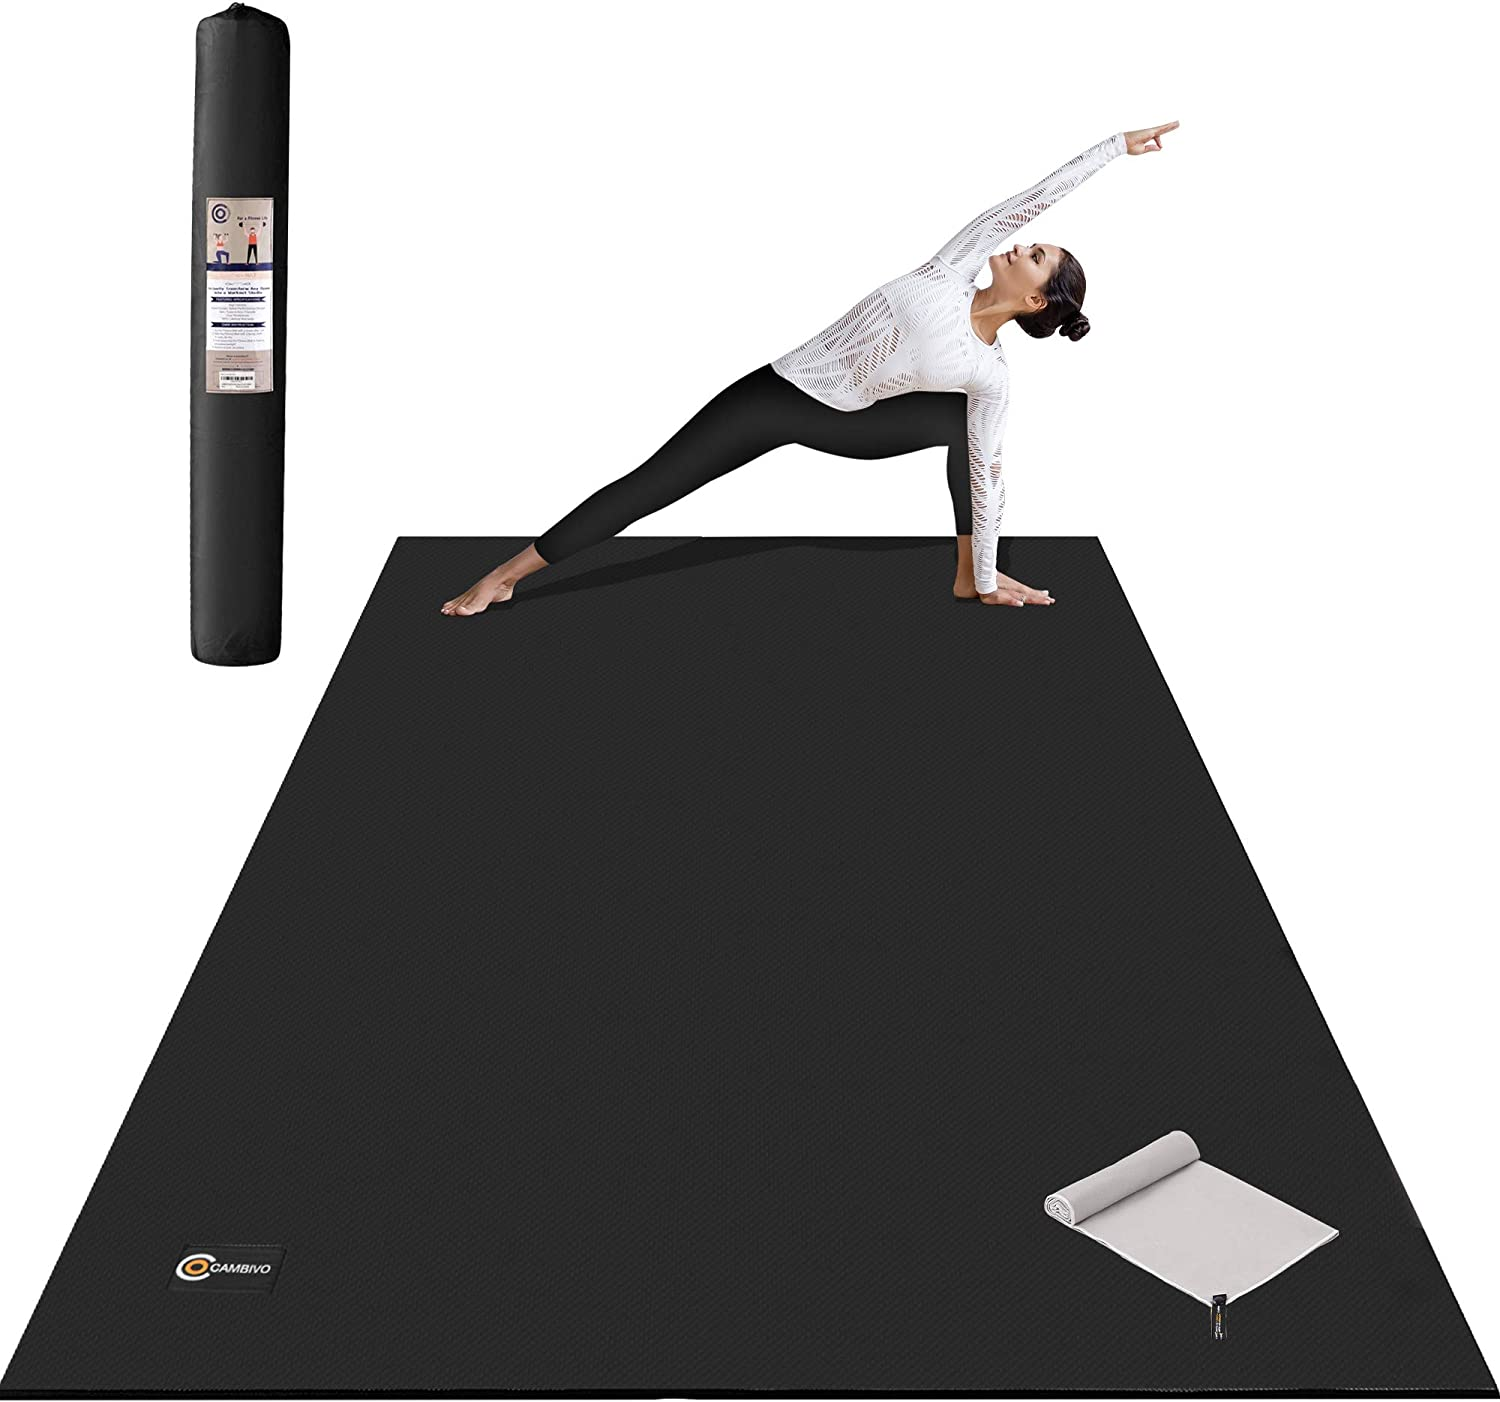 CAMBIVO Large Yoga Mat, 7'x 5' x 8mm Large Wide Exercise mat, Extra Thick Workout Mat for Home Gym Floor, Cardio, Pilates, Stretching, 84'' Long x60'' Wide, Use Without Shoes (Black)